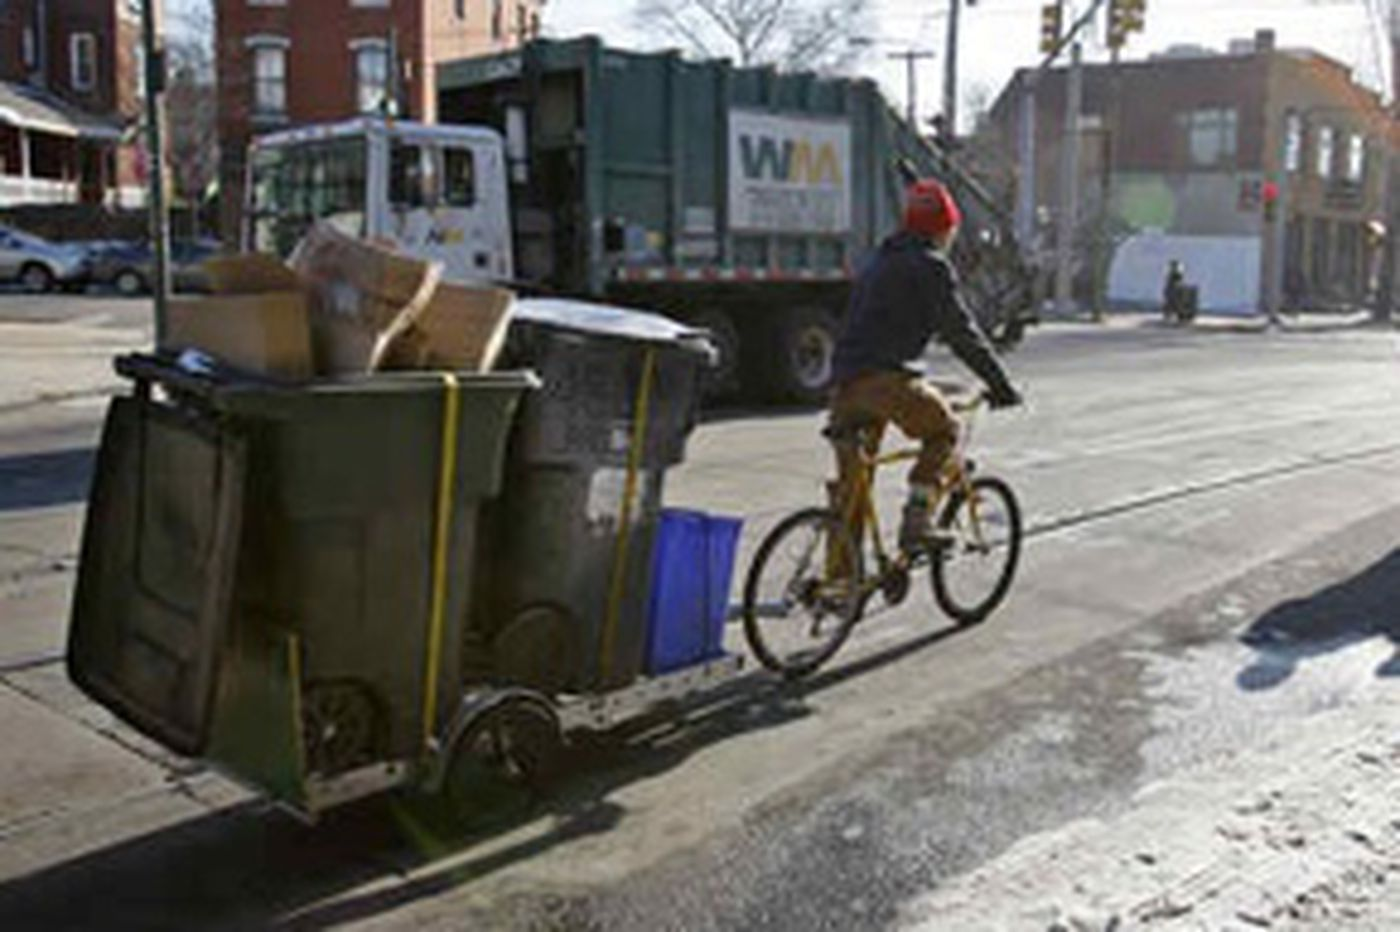 Pedal Co-Op hauls recyclables by bicycle